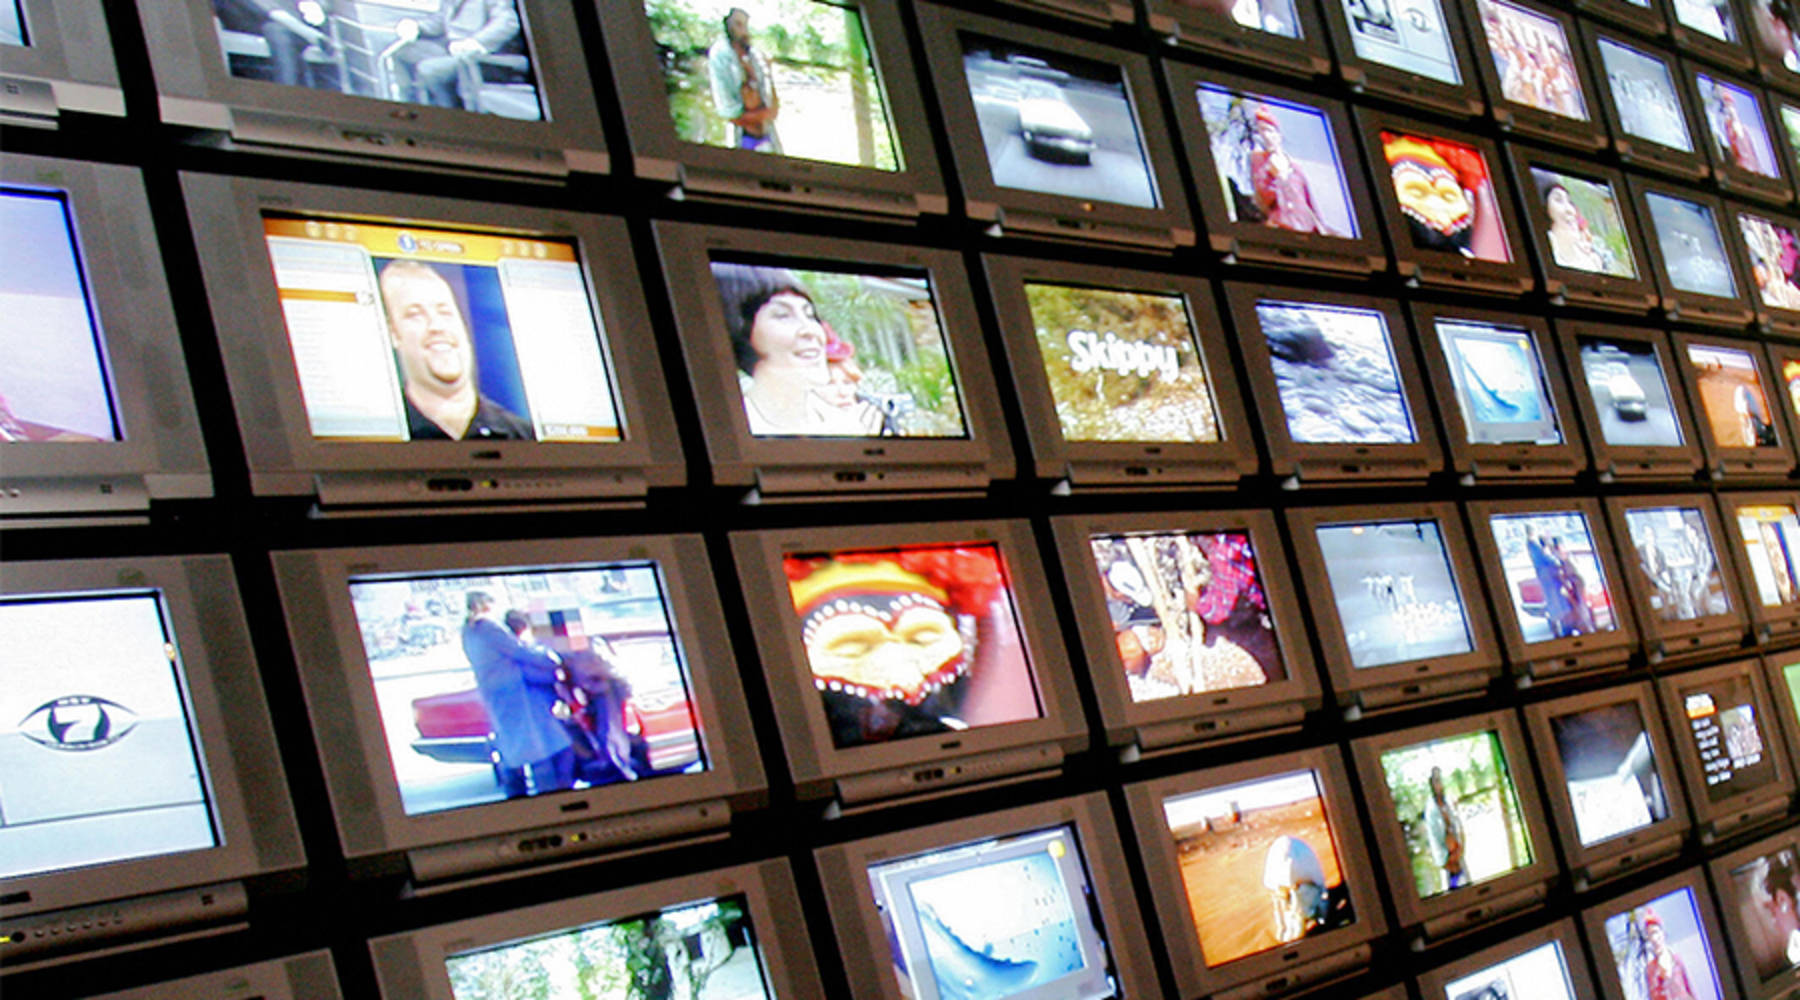 Targeted ads aren't just online, they're on TV - Marketplace